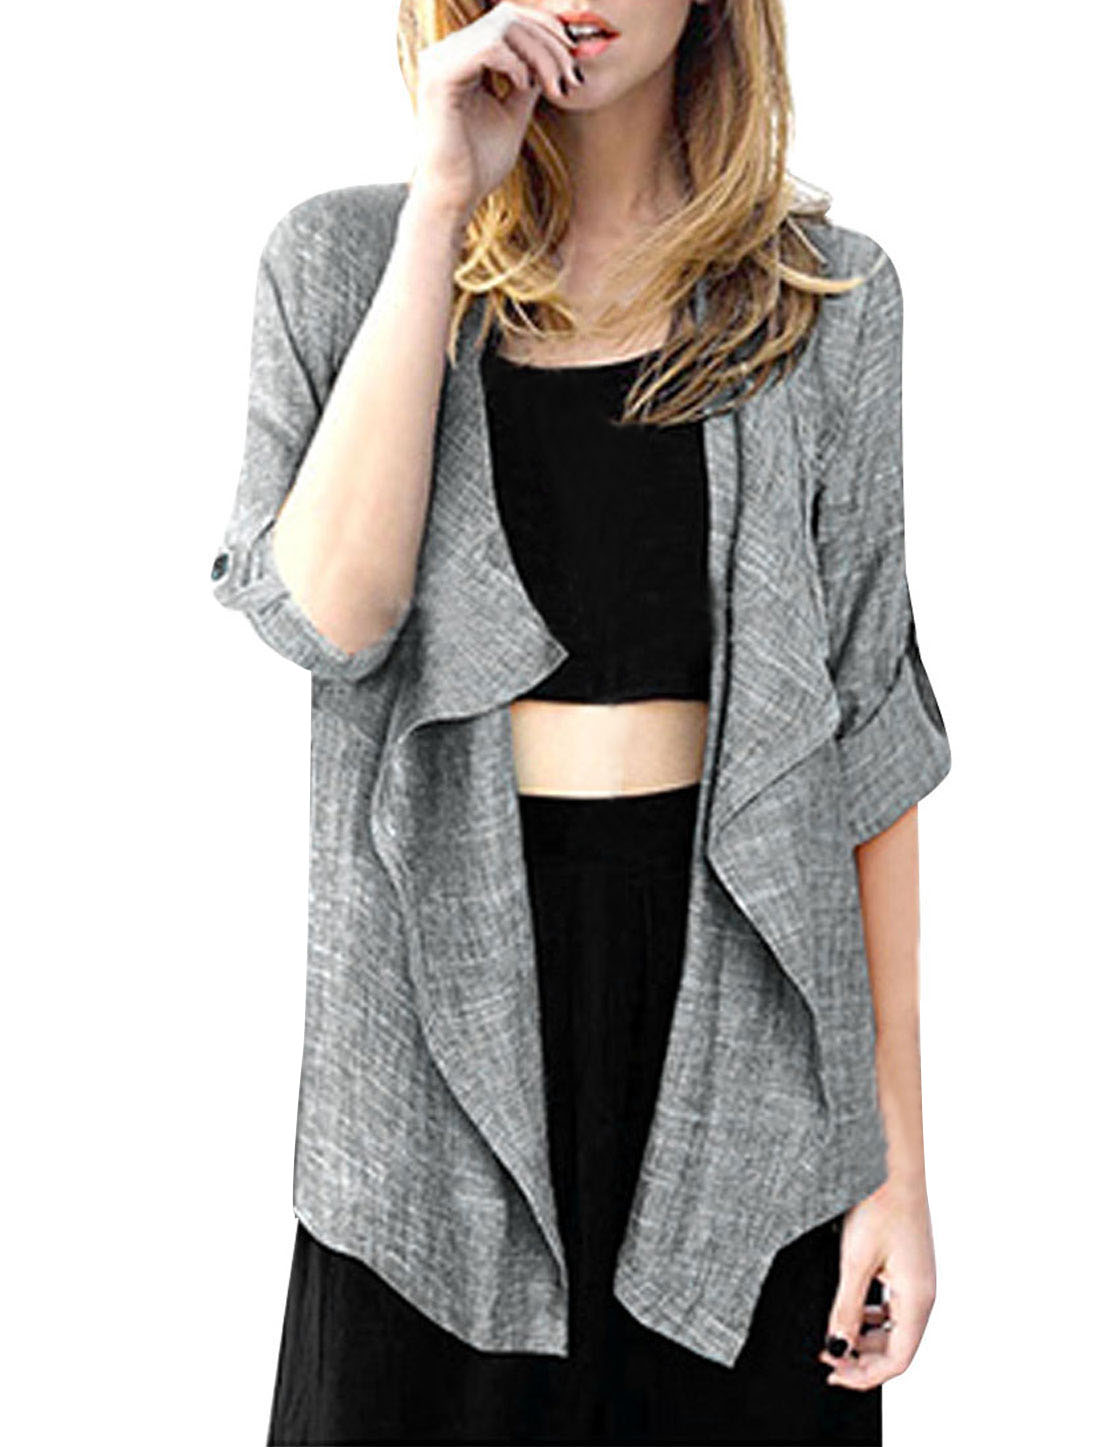 Women's Front Opening Buttonless Irregular Hem Stylish Gray M Cardigan